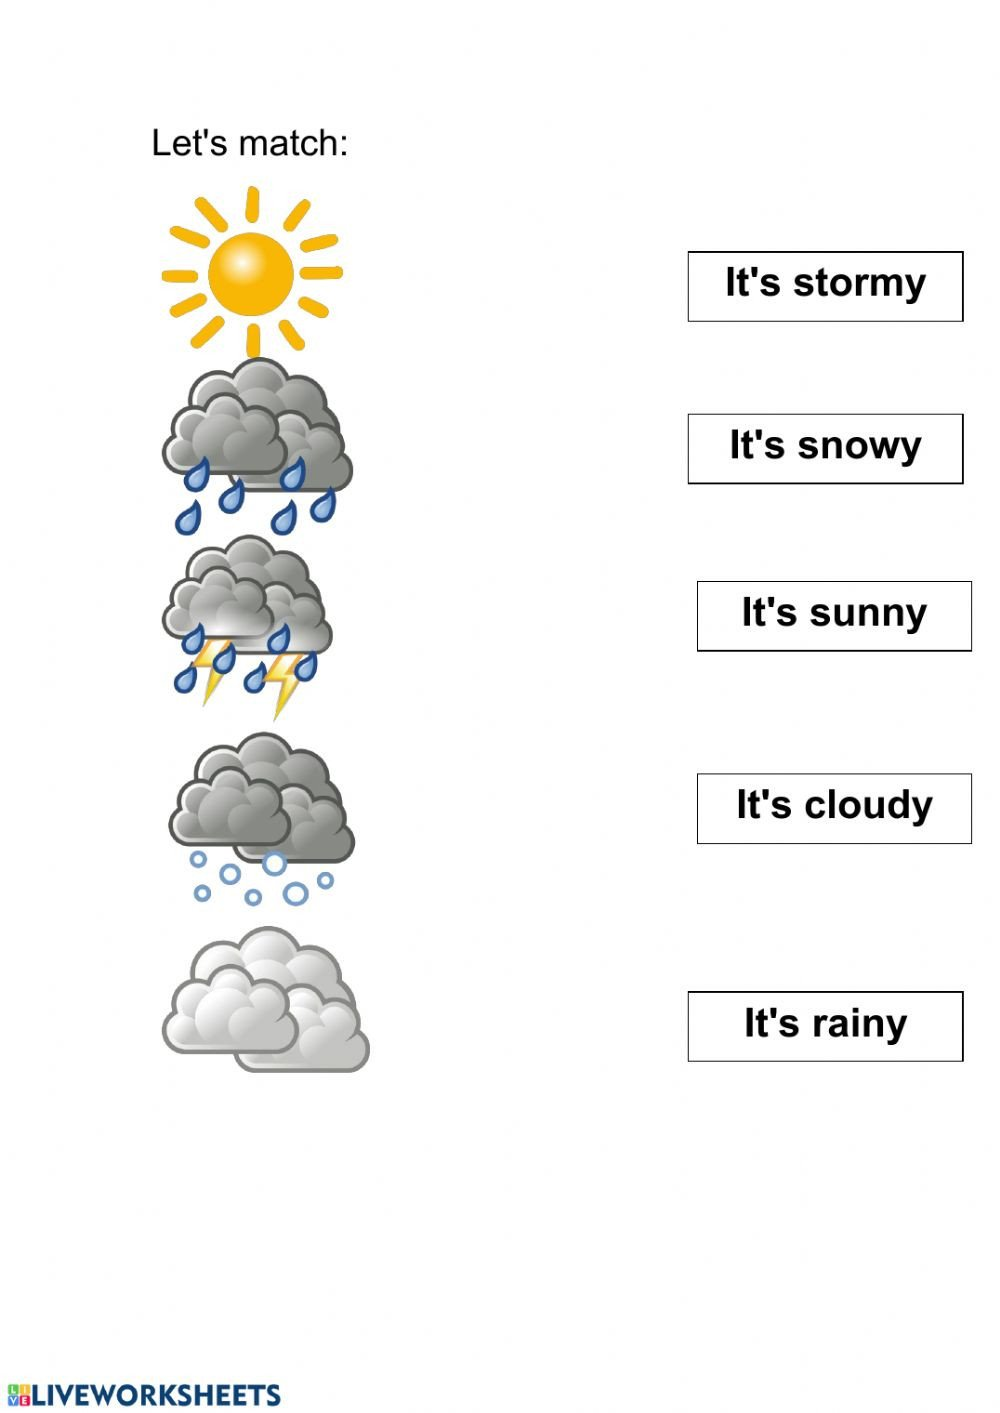 Weather worksheet for kids du uj